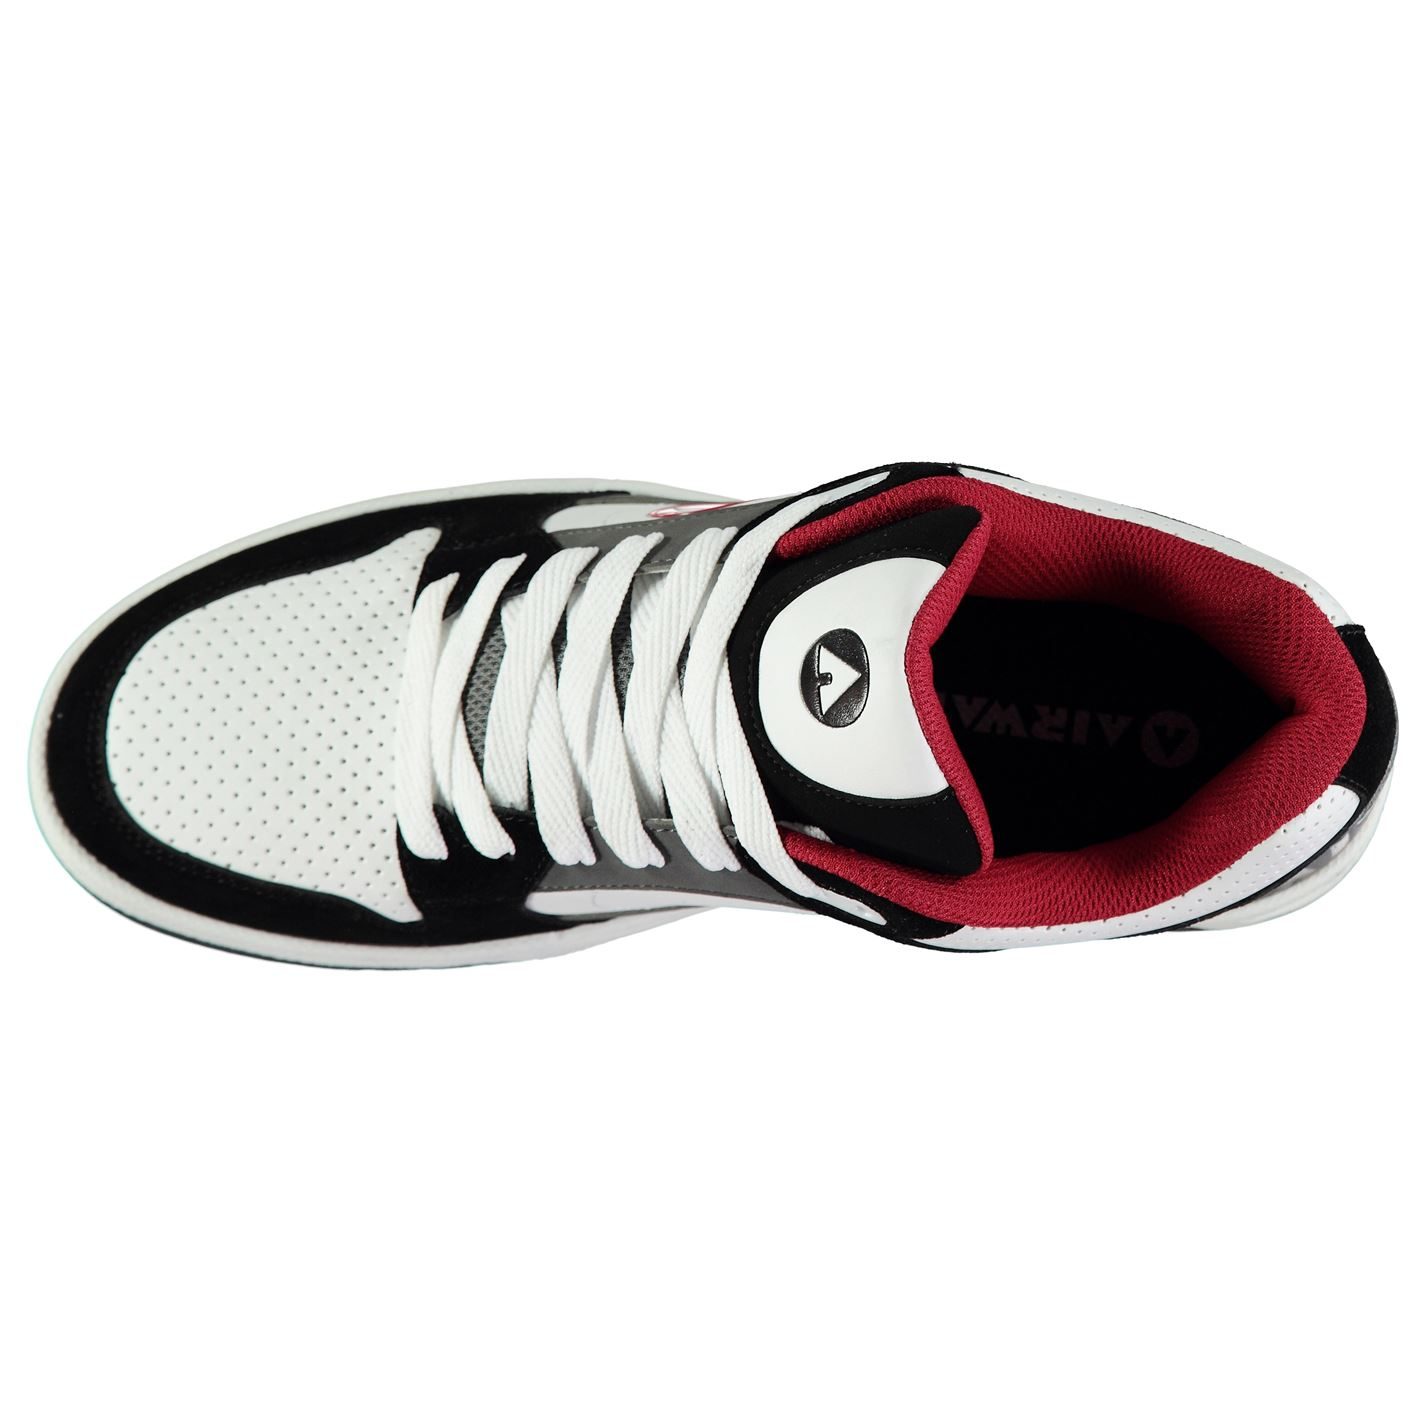 Airwalk-Throttle-Skate-Shoes-Mens-Gents-Laces-Fastened